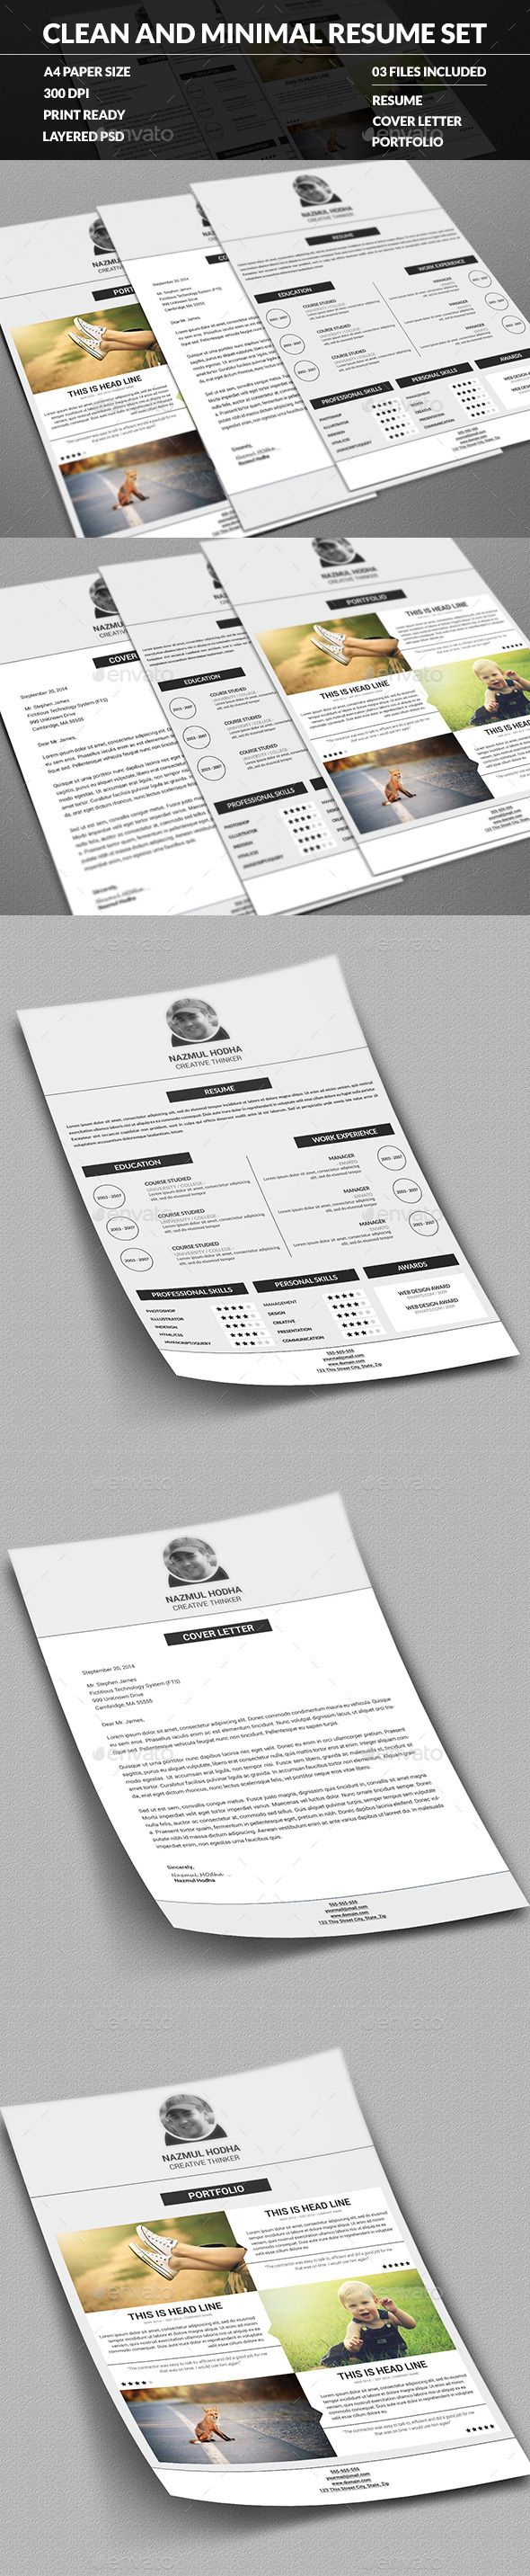 18 Best Cool Resumes Images On Pinterest Design Resume Design